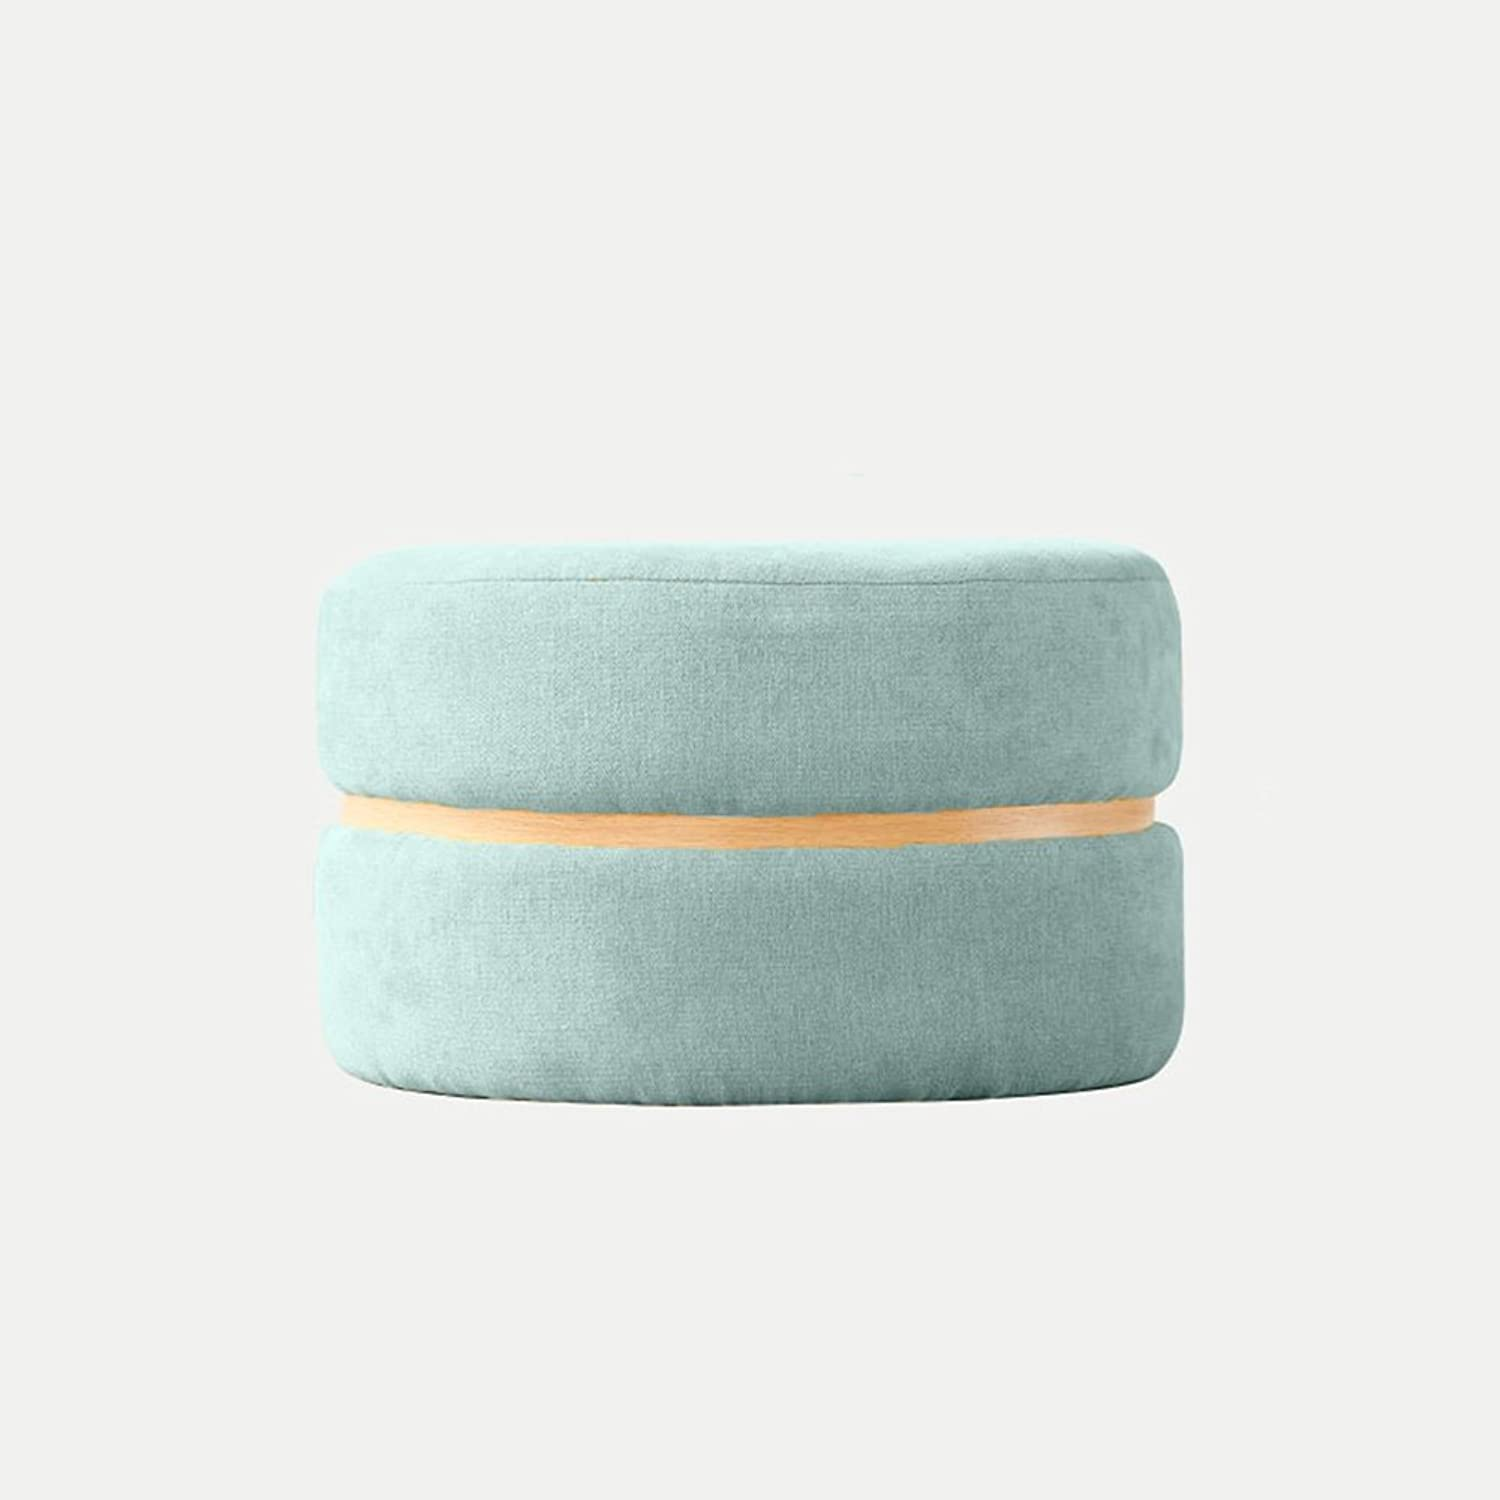 XIAO YING Footstool Osman Soft Wood Frame Macaron Creative Home Fabric Small Stool Low Stool For shoes Short Cute Biscuit Flannel Round, 4 colors, 2 Creative Sool